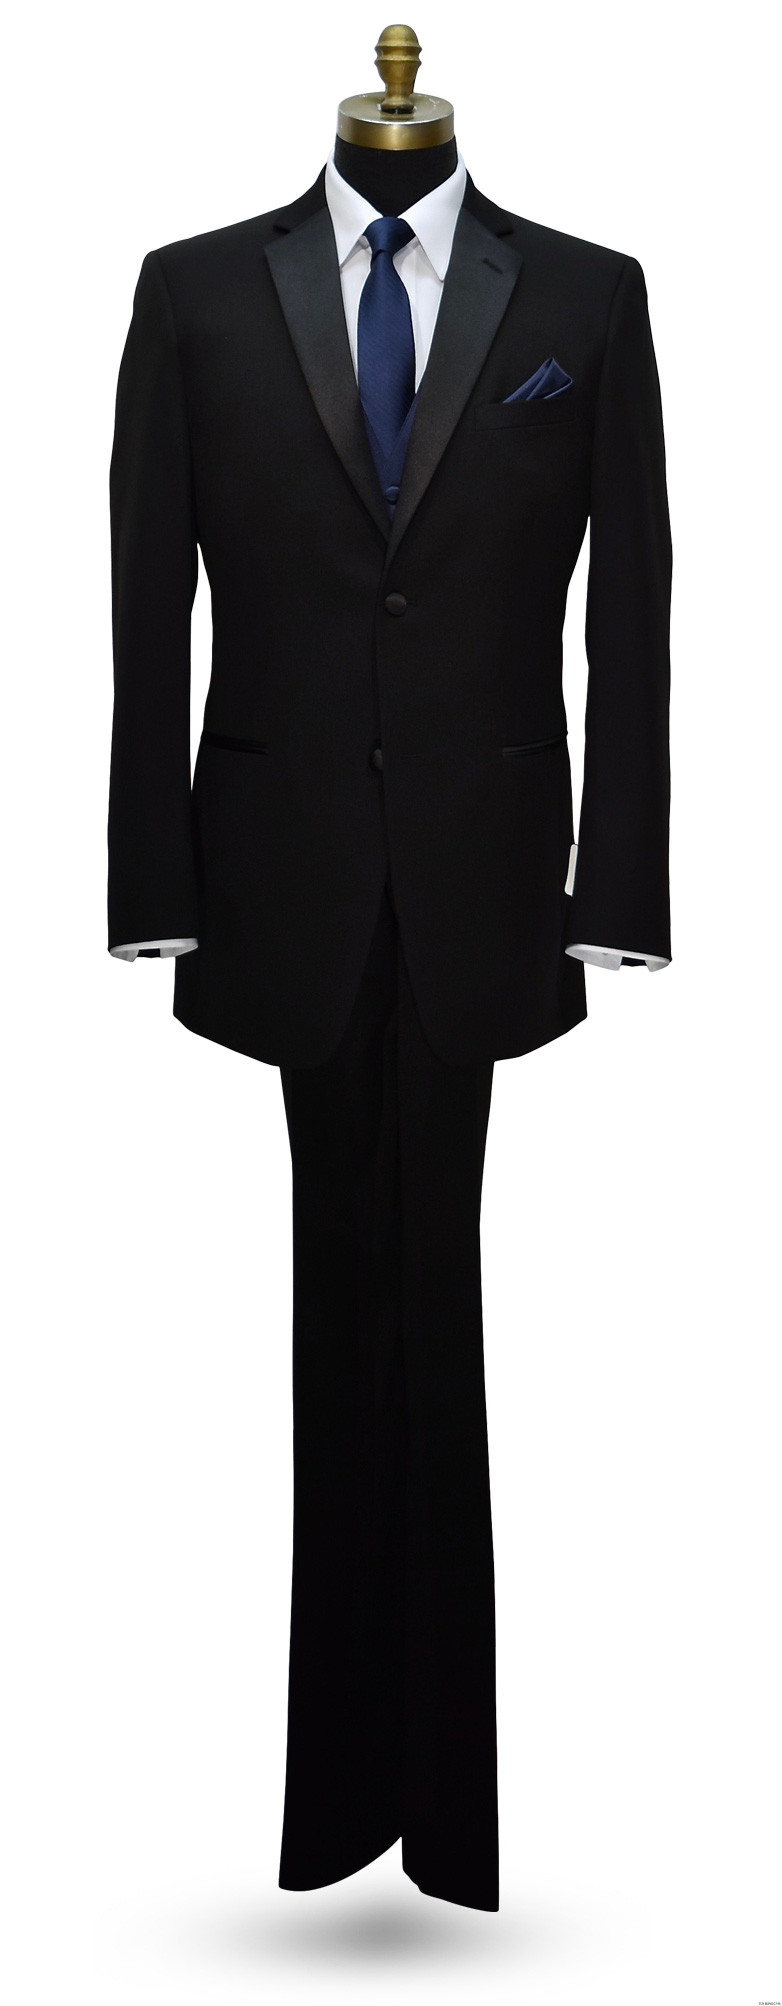 Black notch lapel tuxedo with navy blue vest and long tie